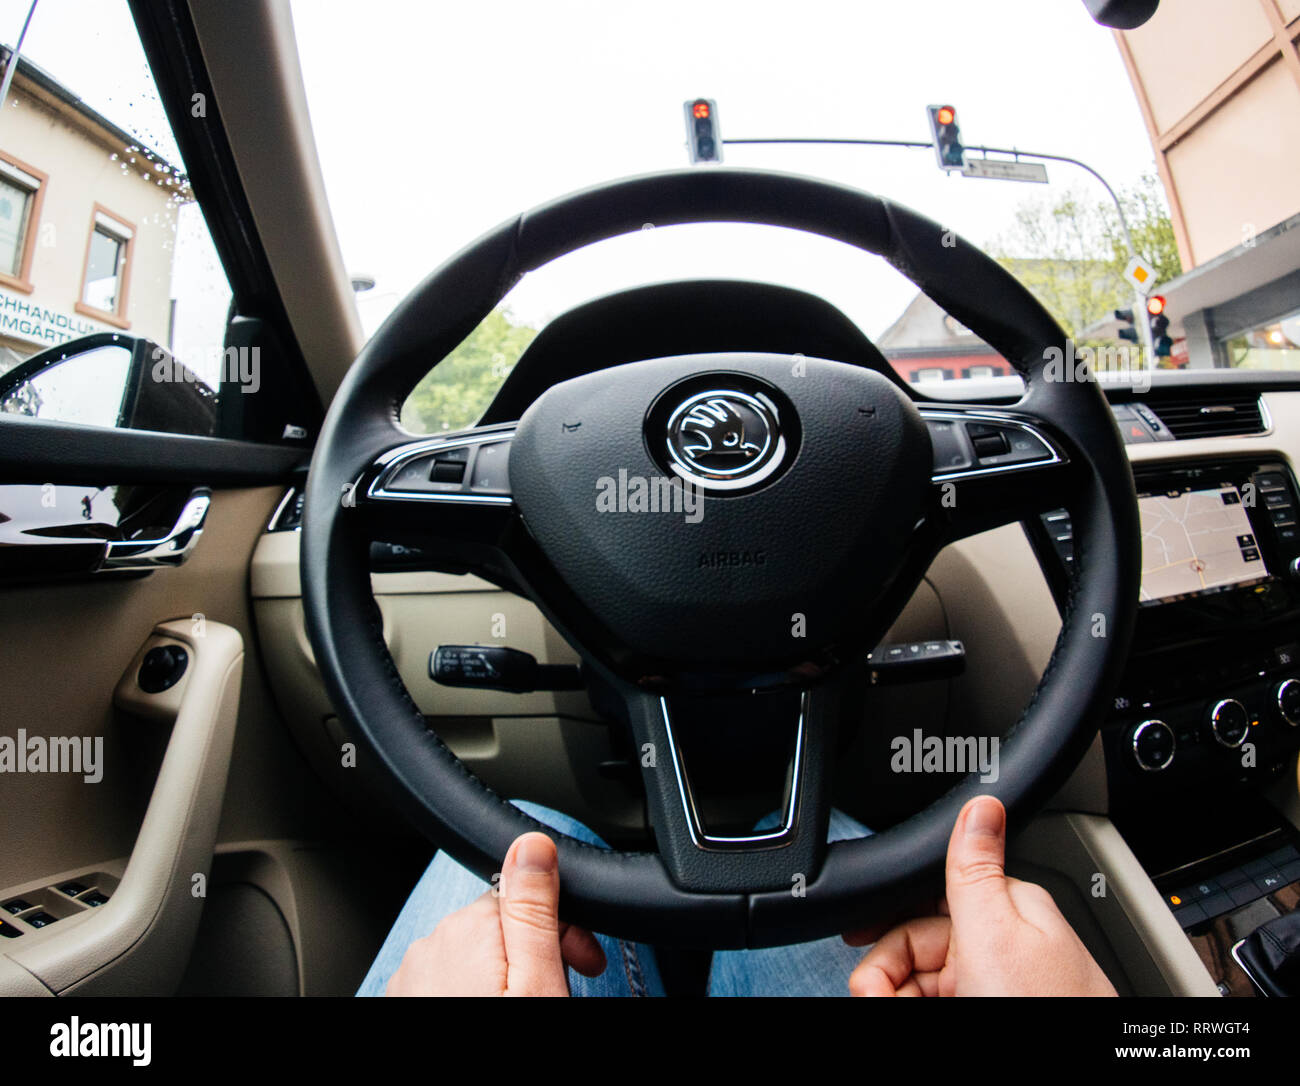 PARIS, FRANCE - MAR 5, 2018: Young woman driving luxury car - view from the interior with ultra-wide lens POV at the Steering wheel with Skoda logotype - Stock Image